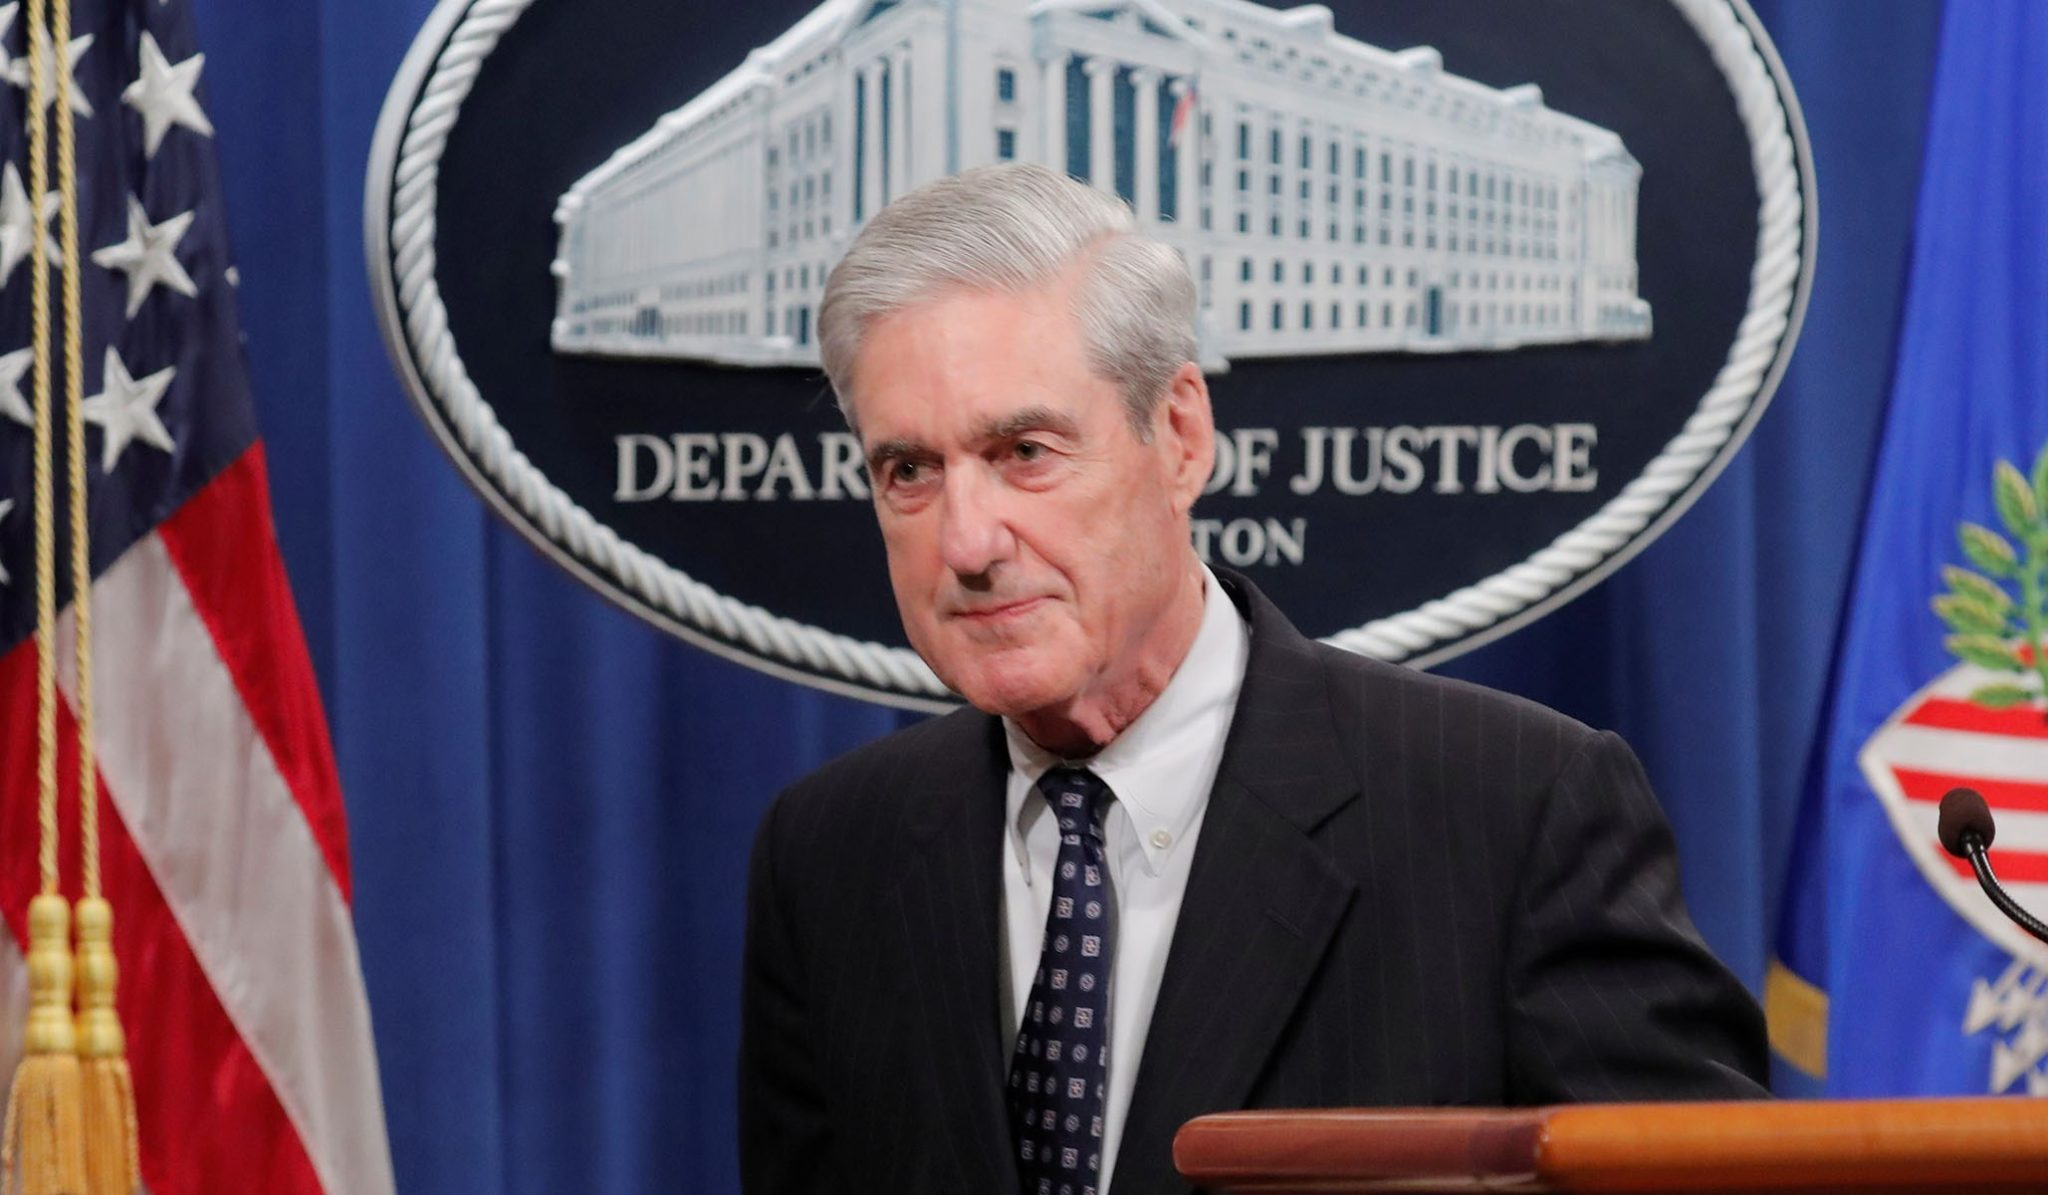 U.S. Special Counsel Robert Mueller delivering statement